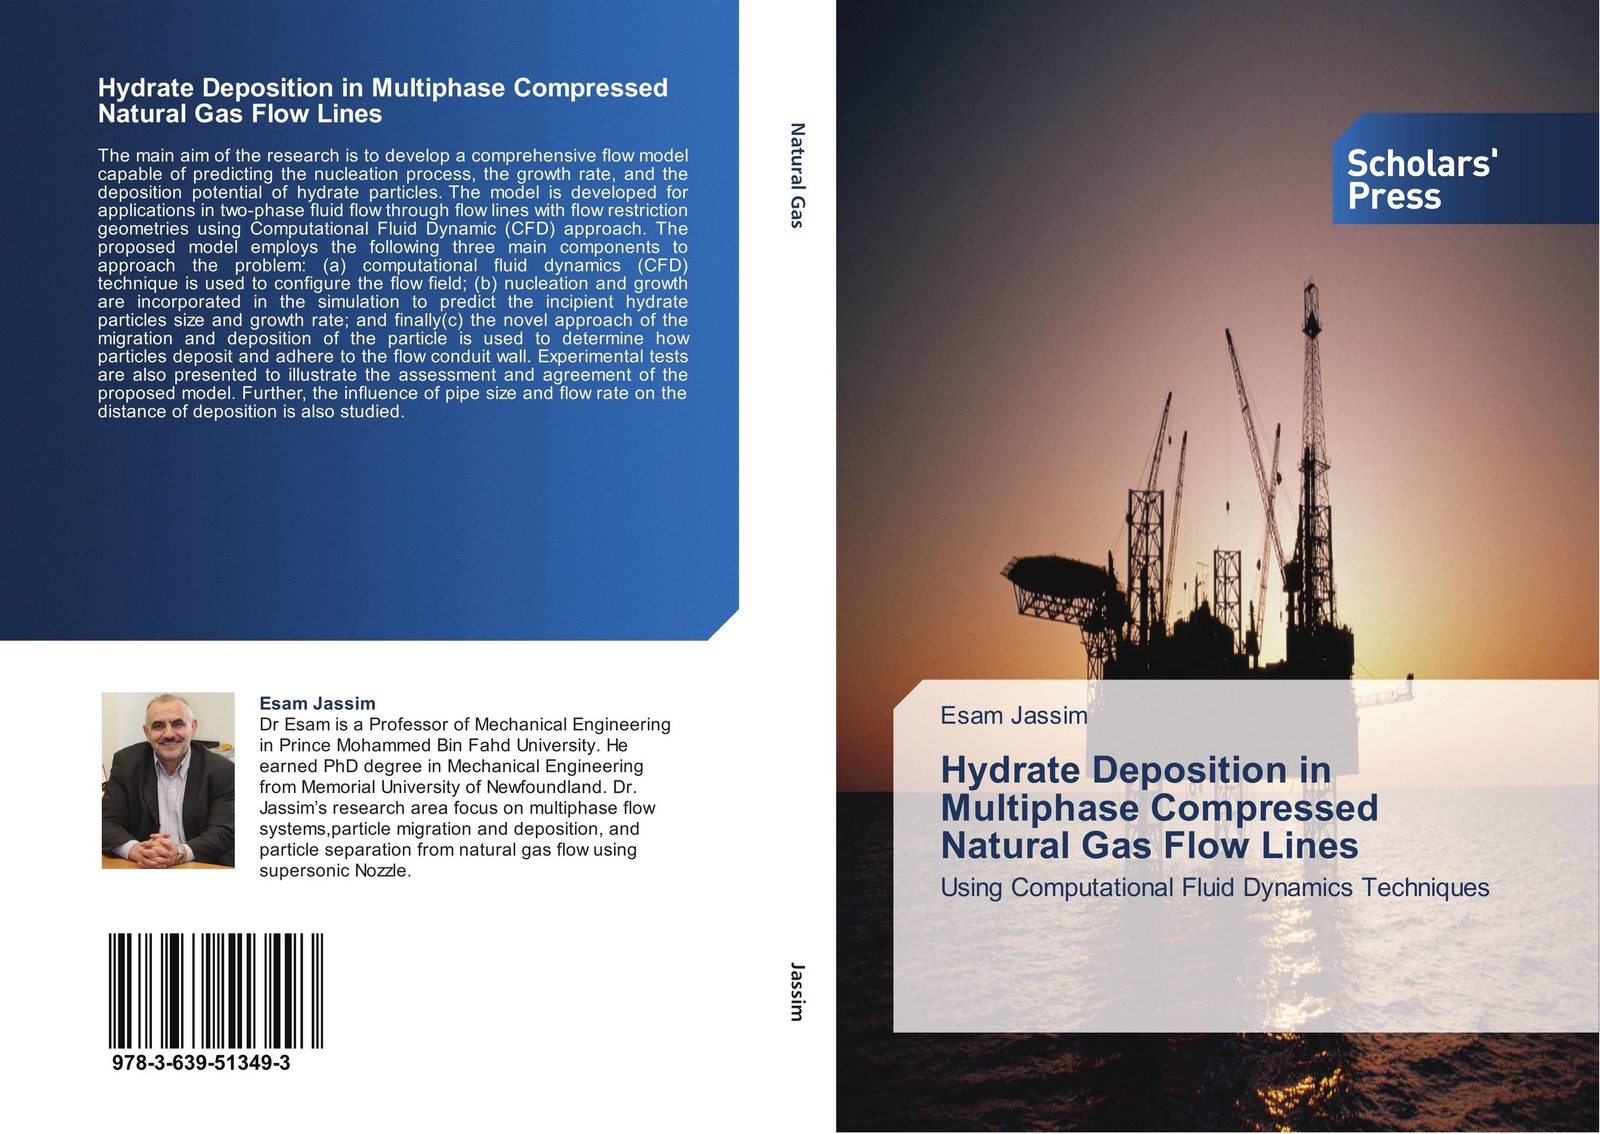 Esam Jassim Hydrate Deposition in Multiphase Compressed Natural Gas Flow Lines keshra sangwal nucleation and crystal growth metastability of solutions and melts